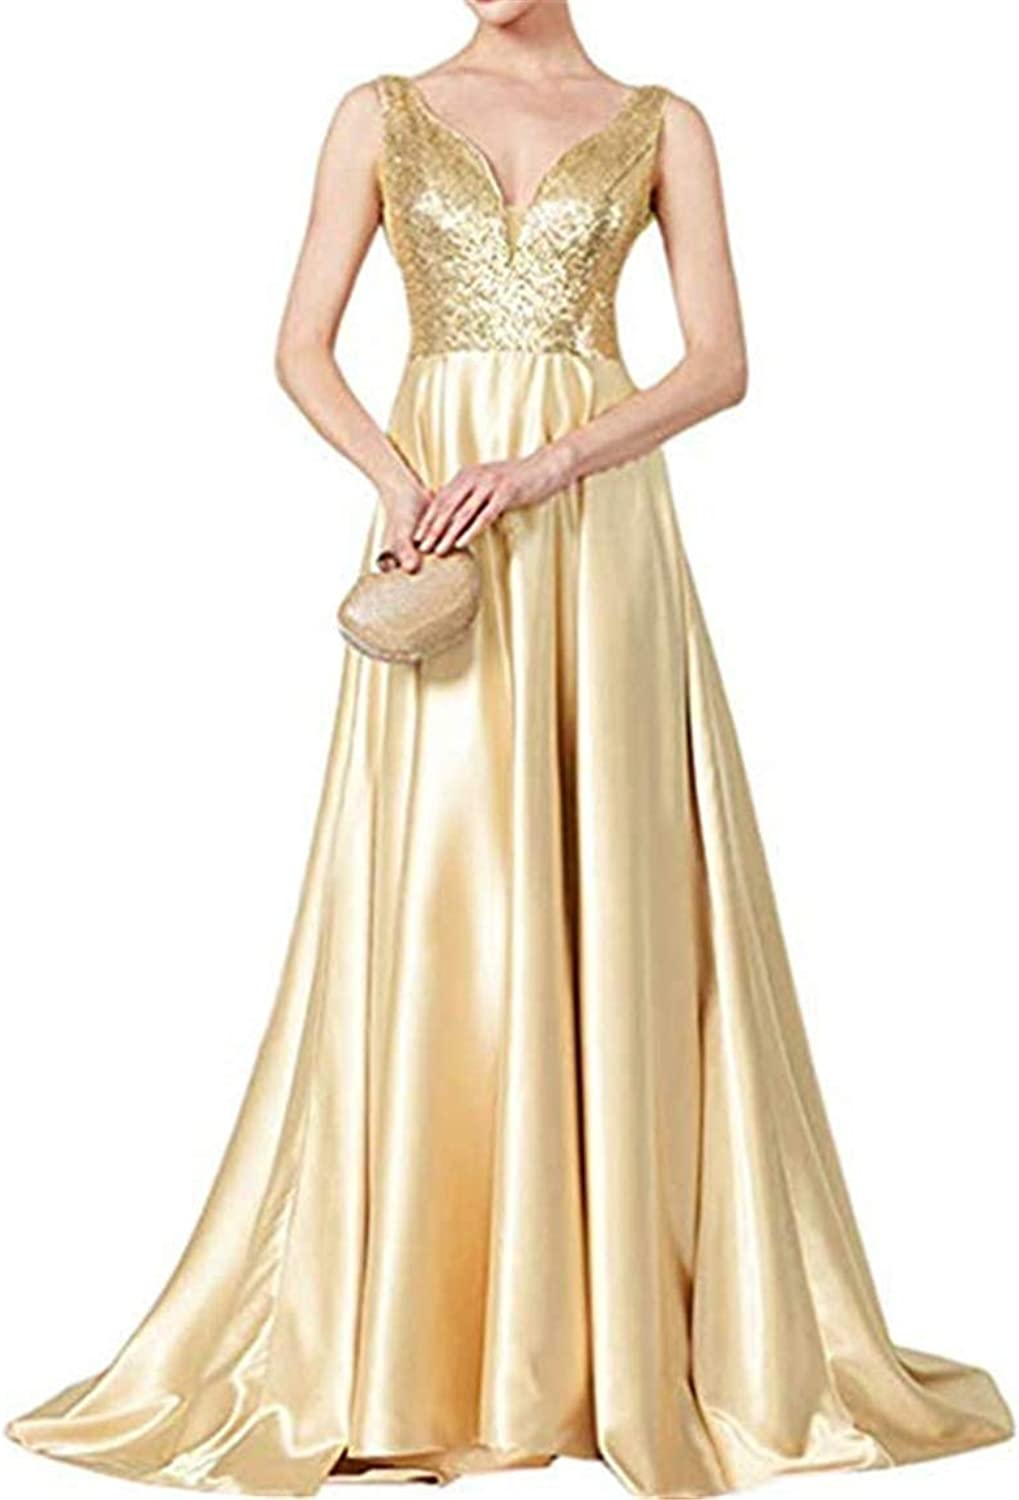 Sequins Bridesmaid Dress Long Prom Party Gowns Satin for Women